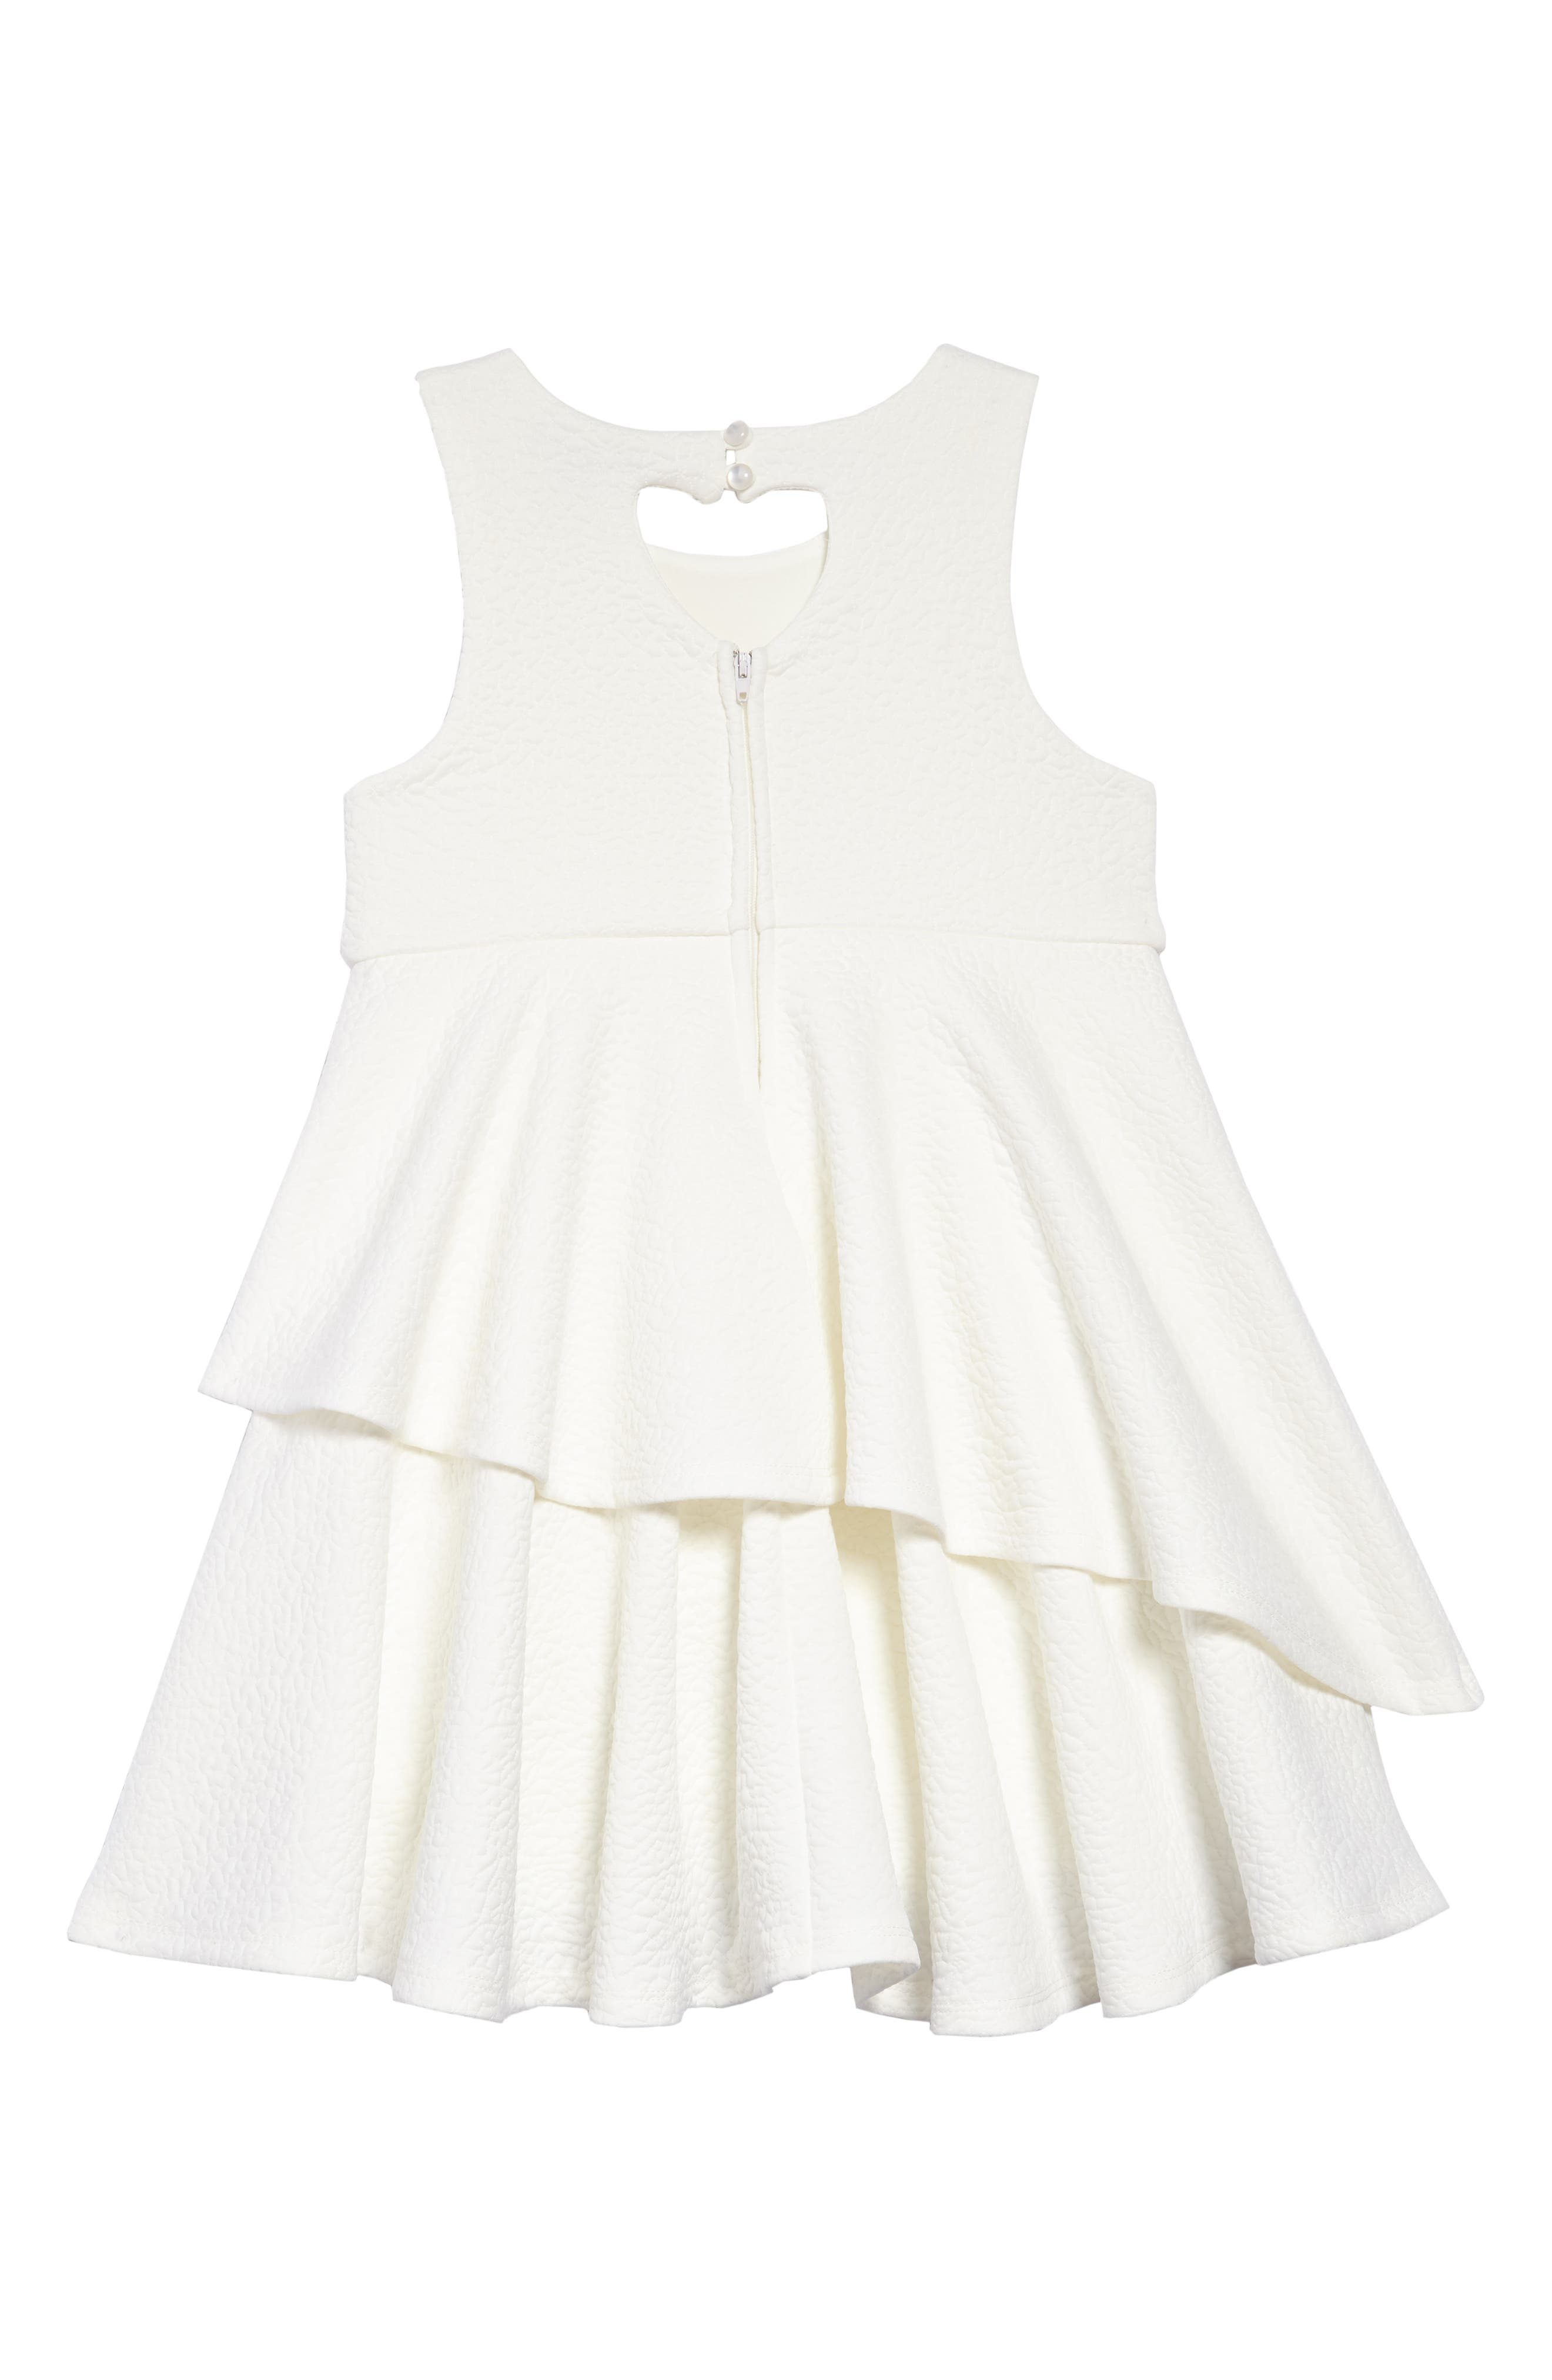 Tiered Dress,                             Alternate thumbnail 2, color,                             White